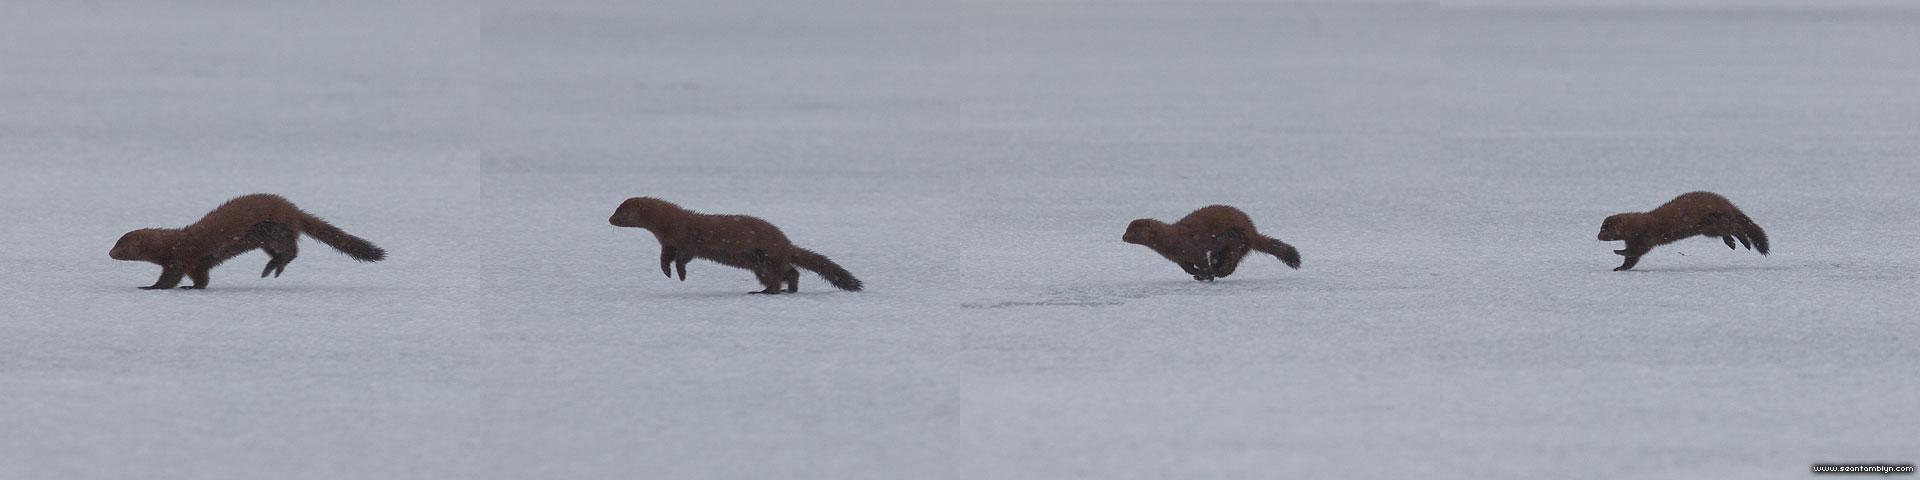 Sprinting mink, Blockhouse Bay, Toronto Islands